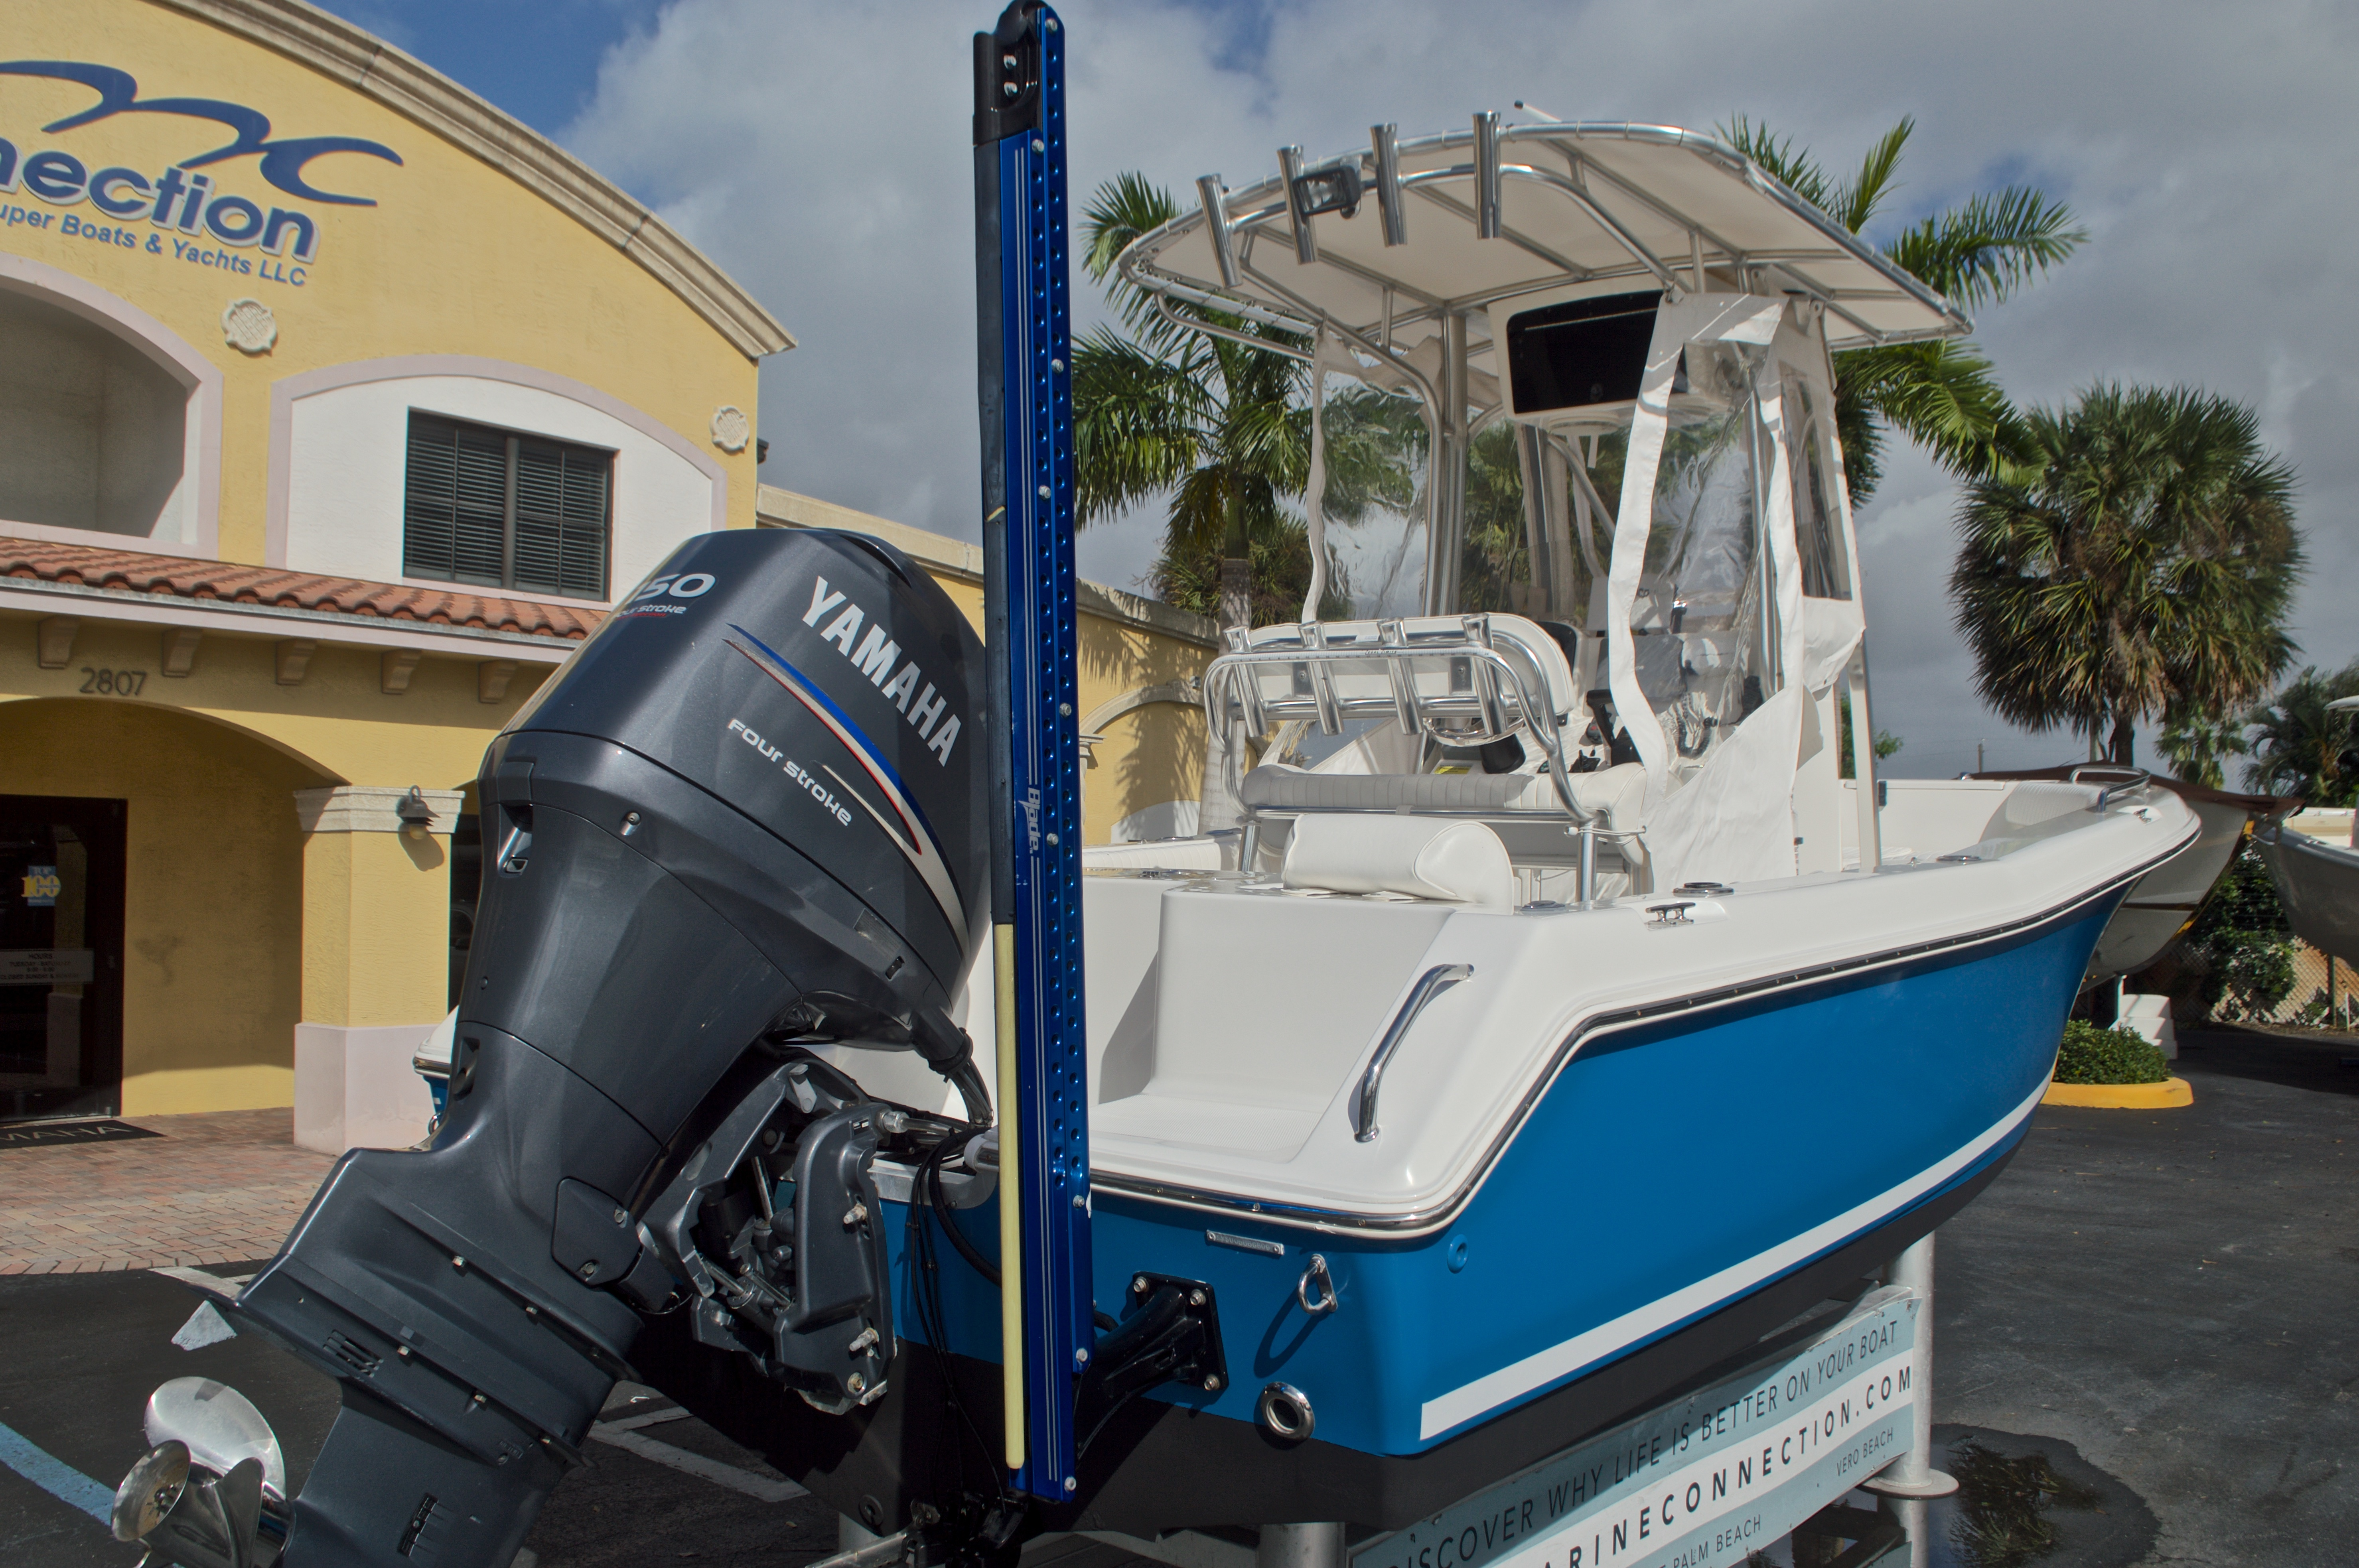 Thumbnail 12 for Used 2009 Sea Hunt 207 Triton boat for sale in West Palm Beach, FL